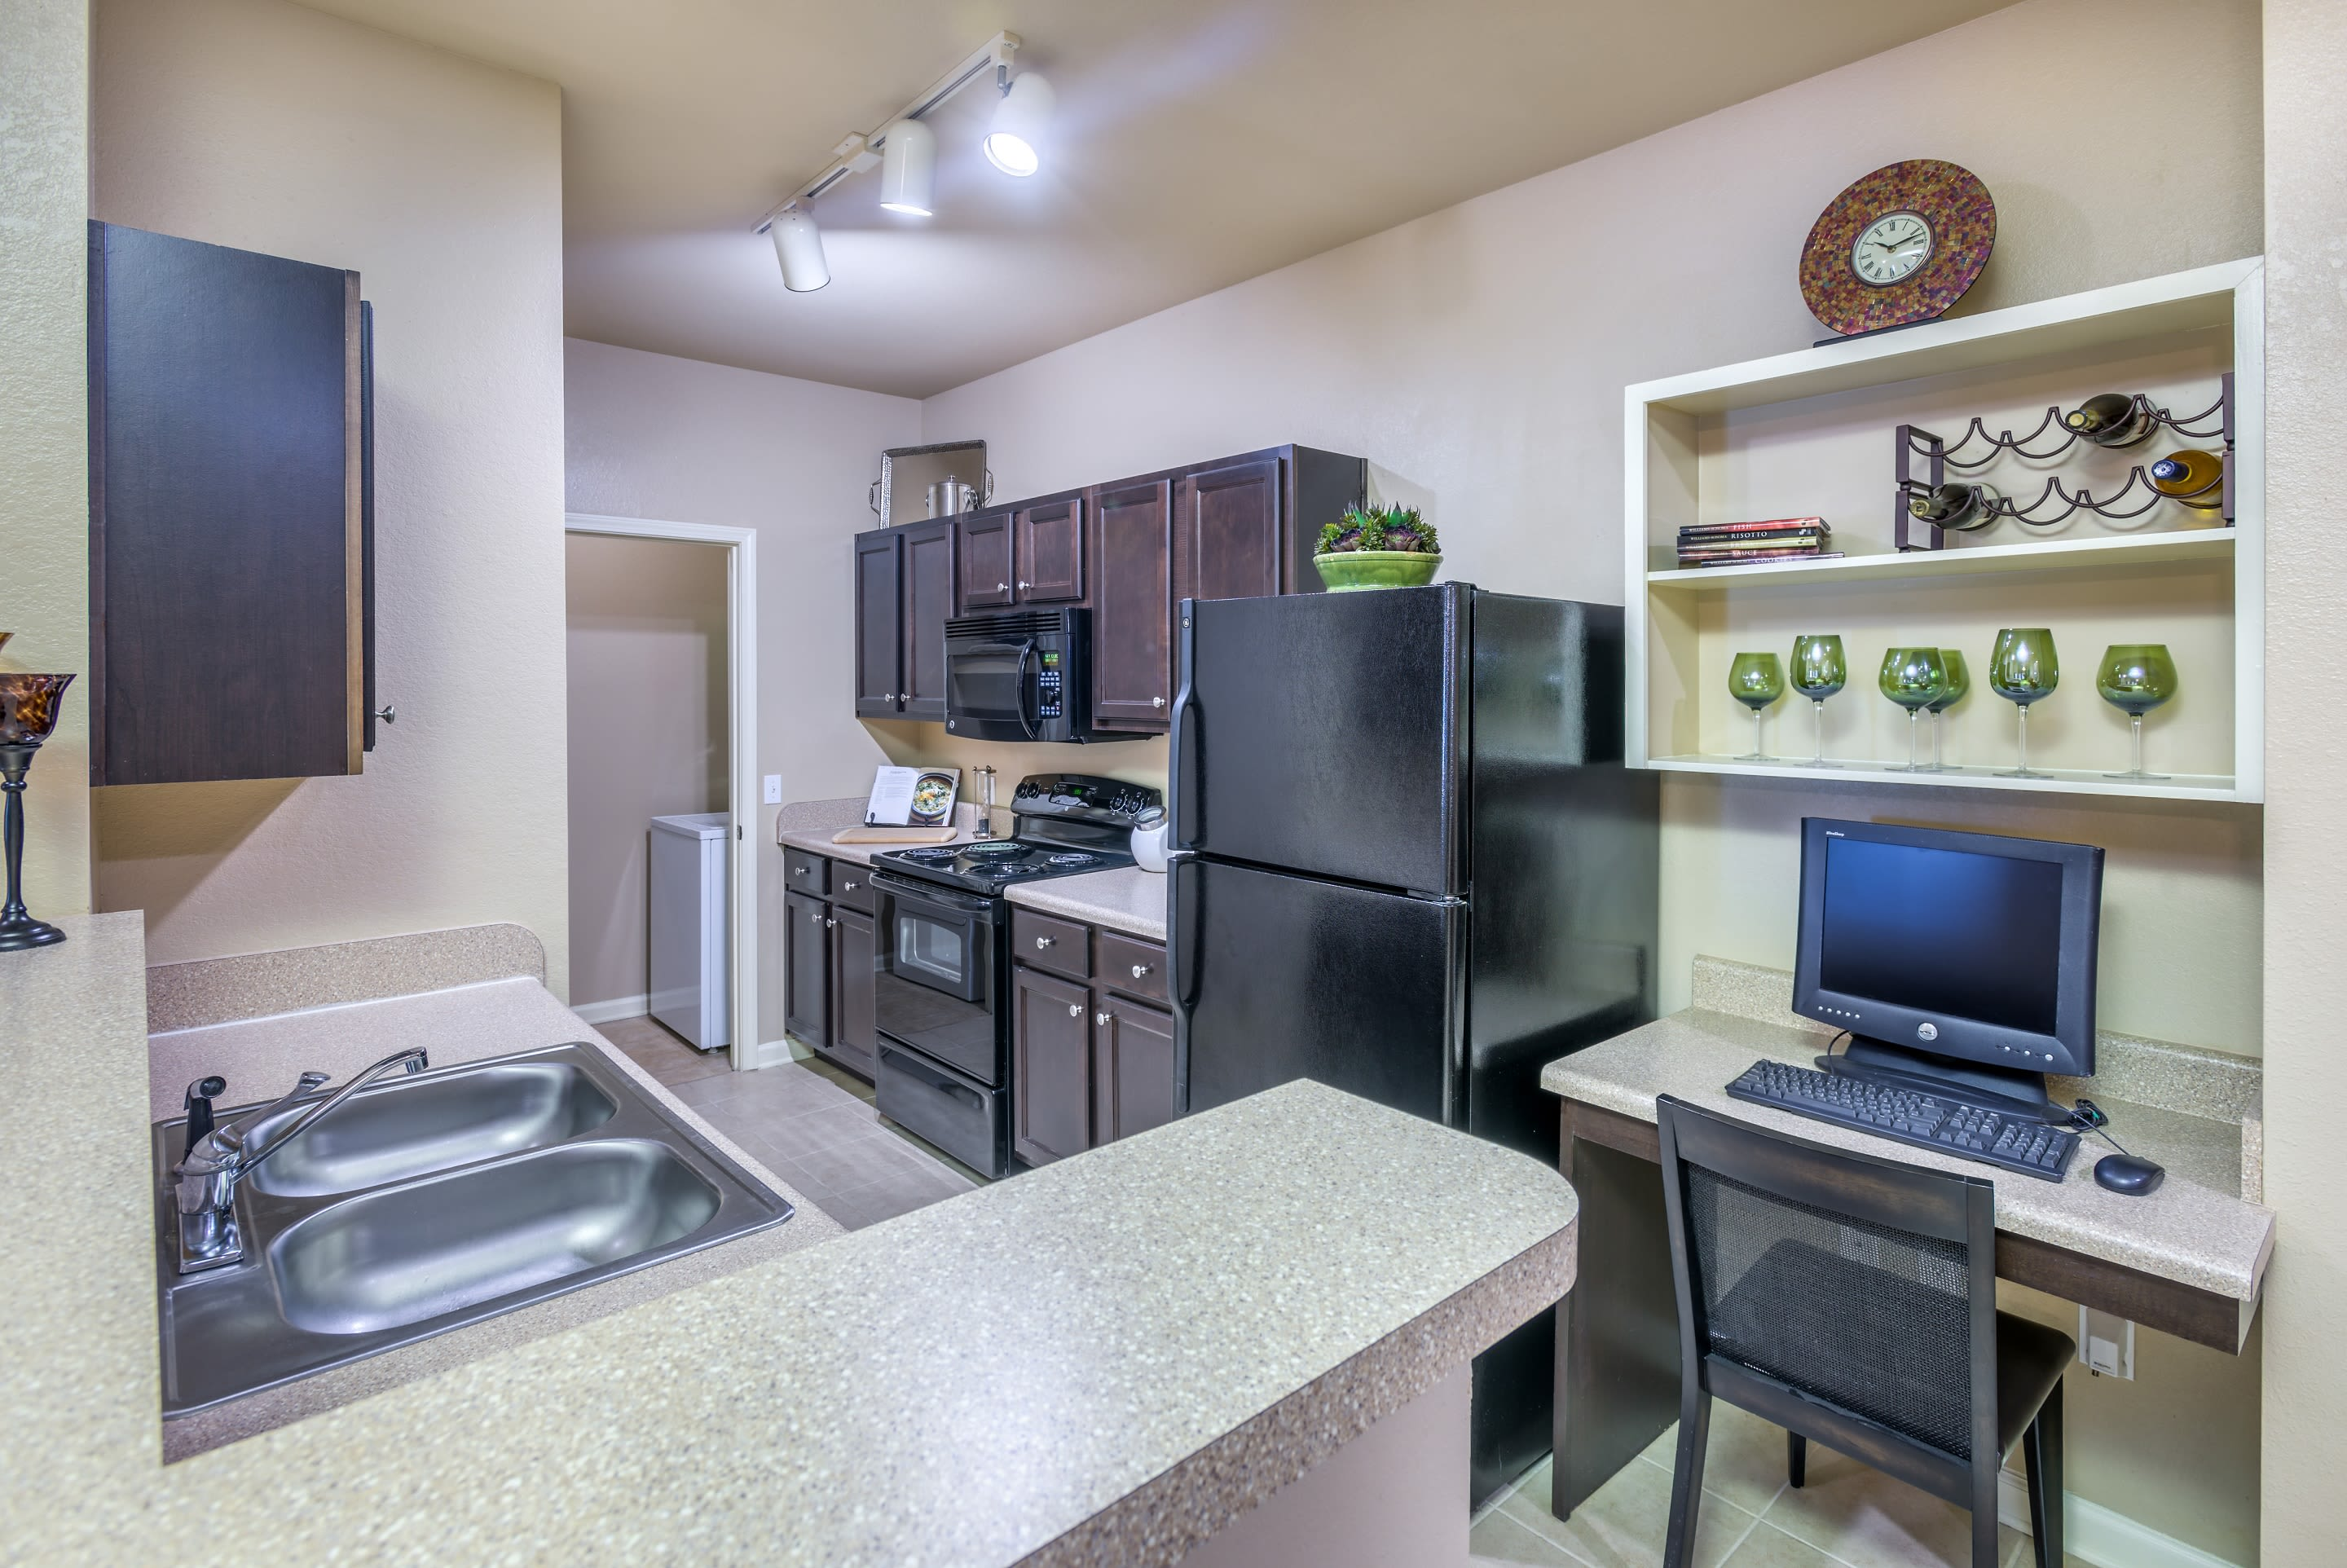 Renovated Apartments with built-in desks at The Vive in Kannapolis, North Carolina